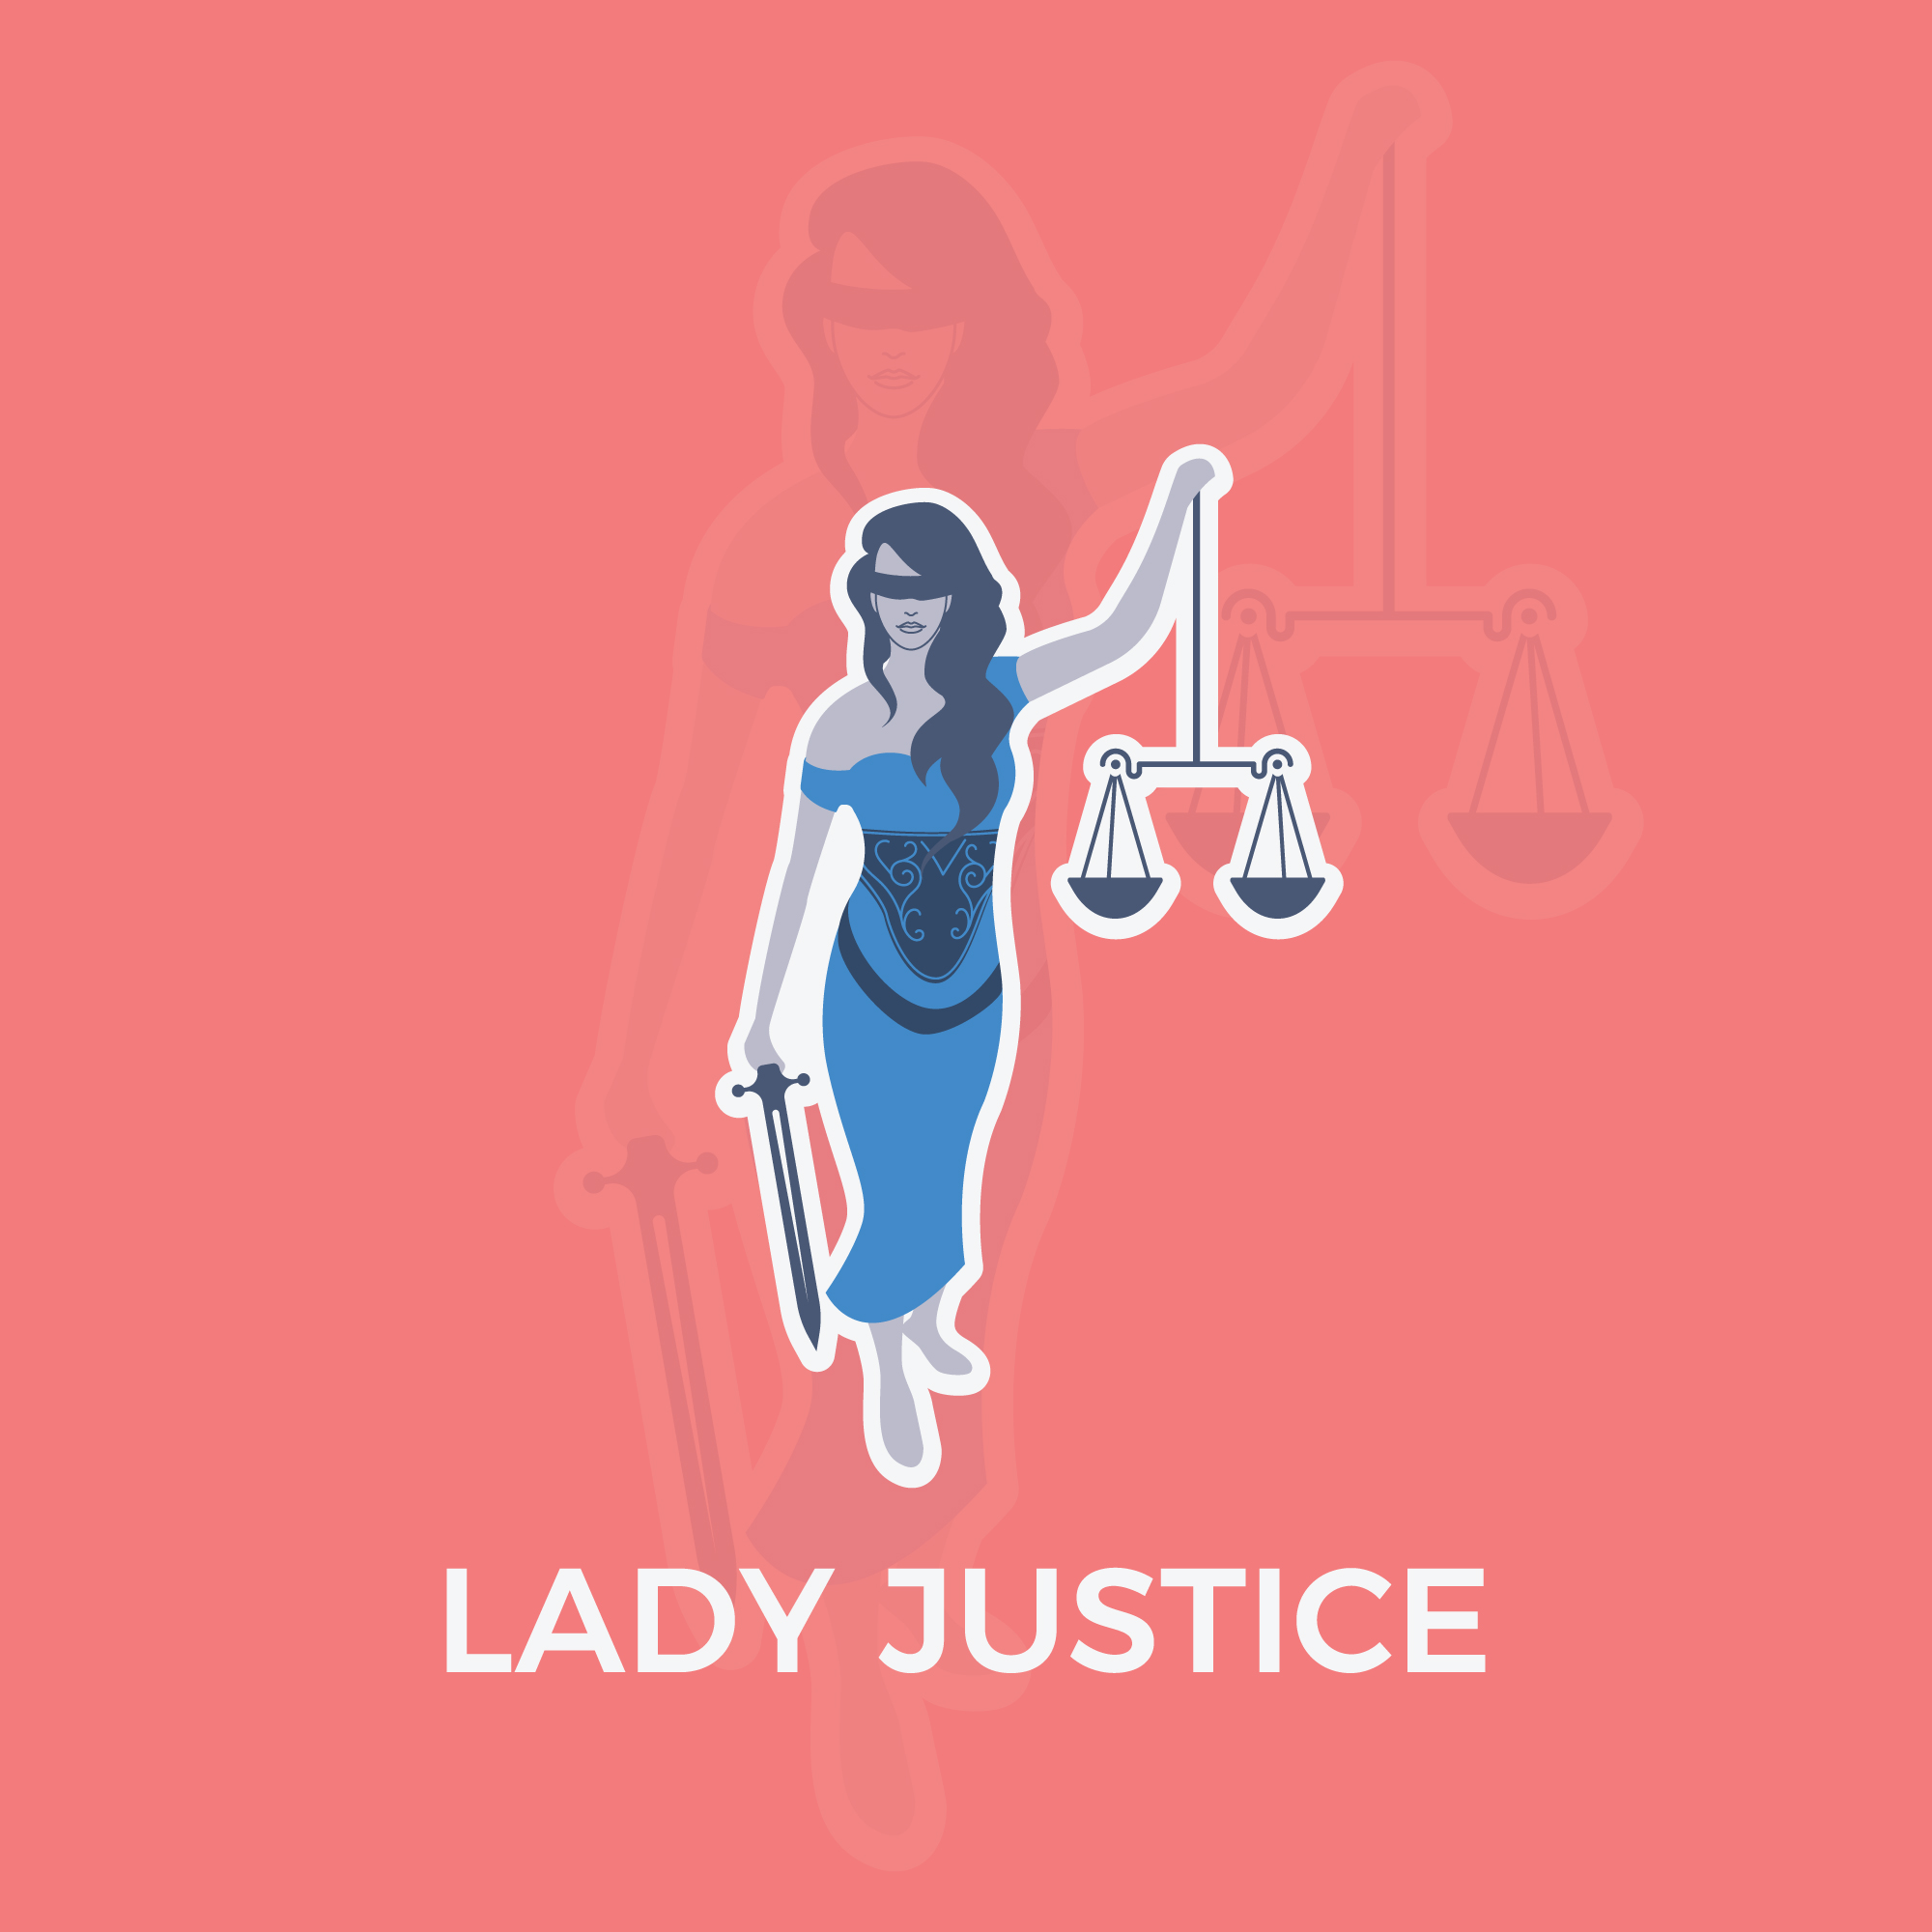 Lady Justice charactther